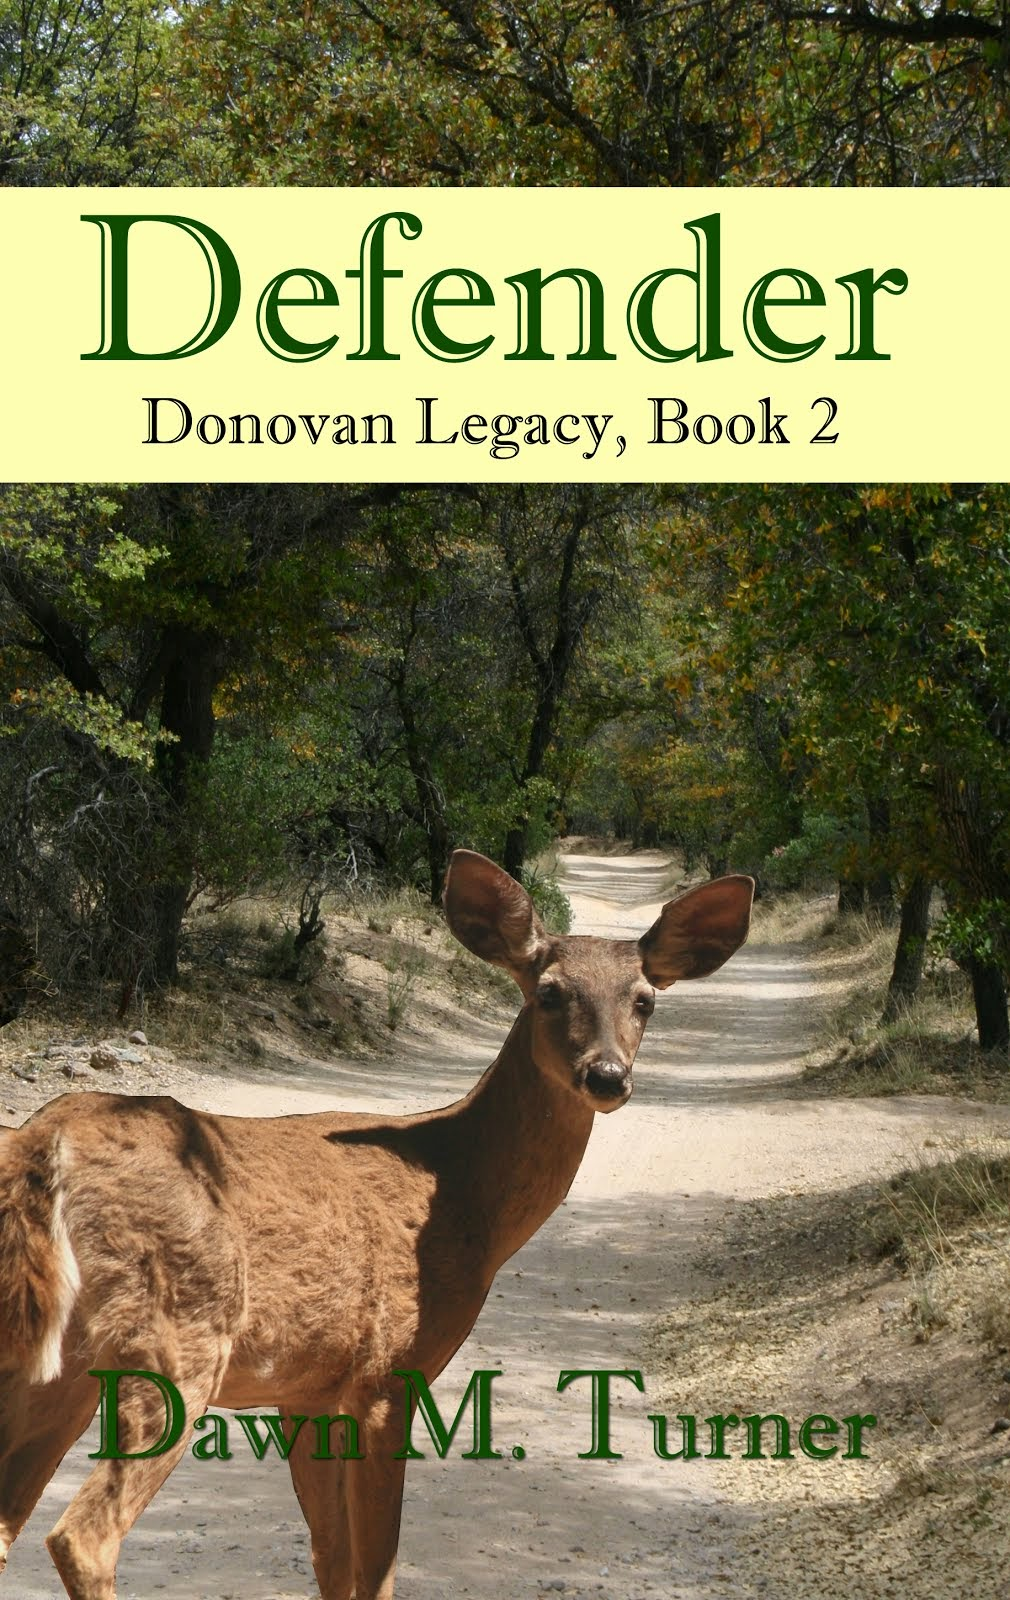 Defender - Donovan Legacy series, book 2